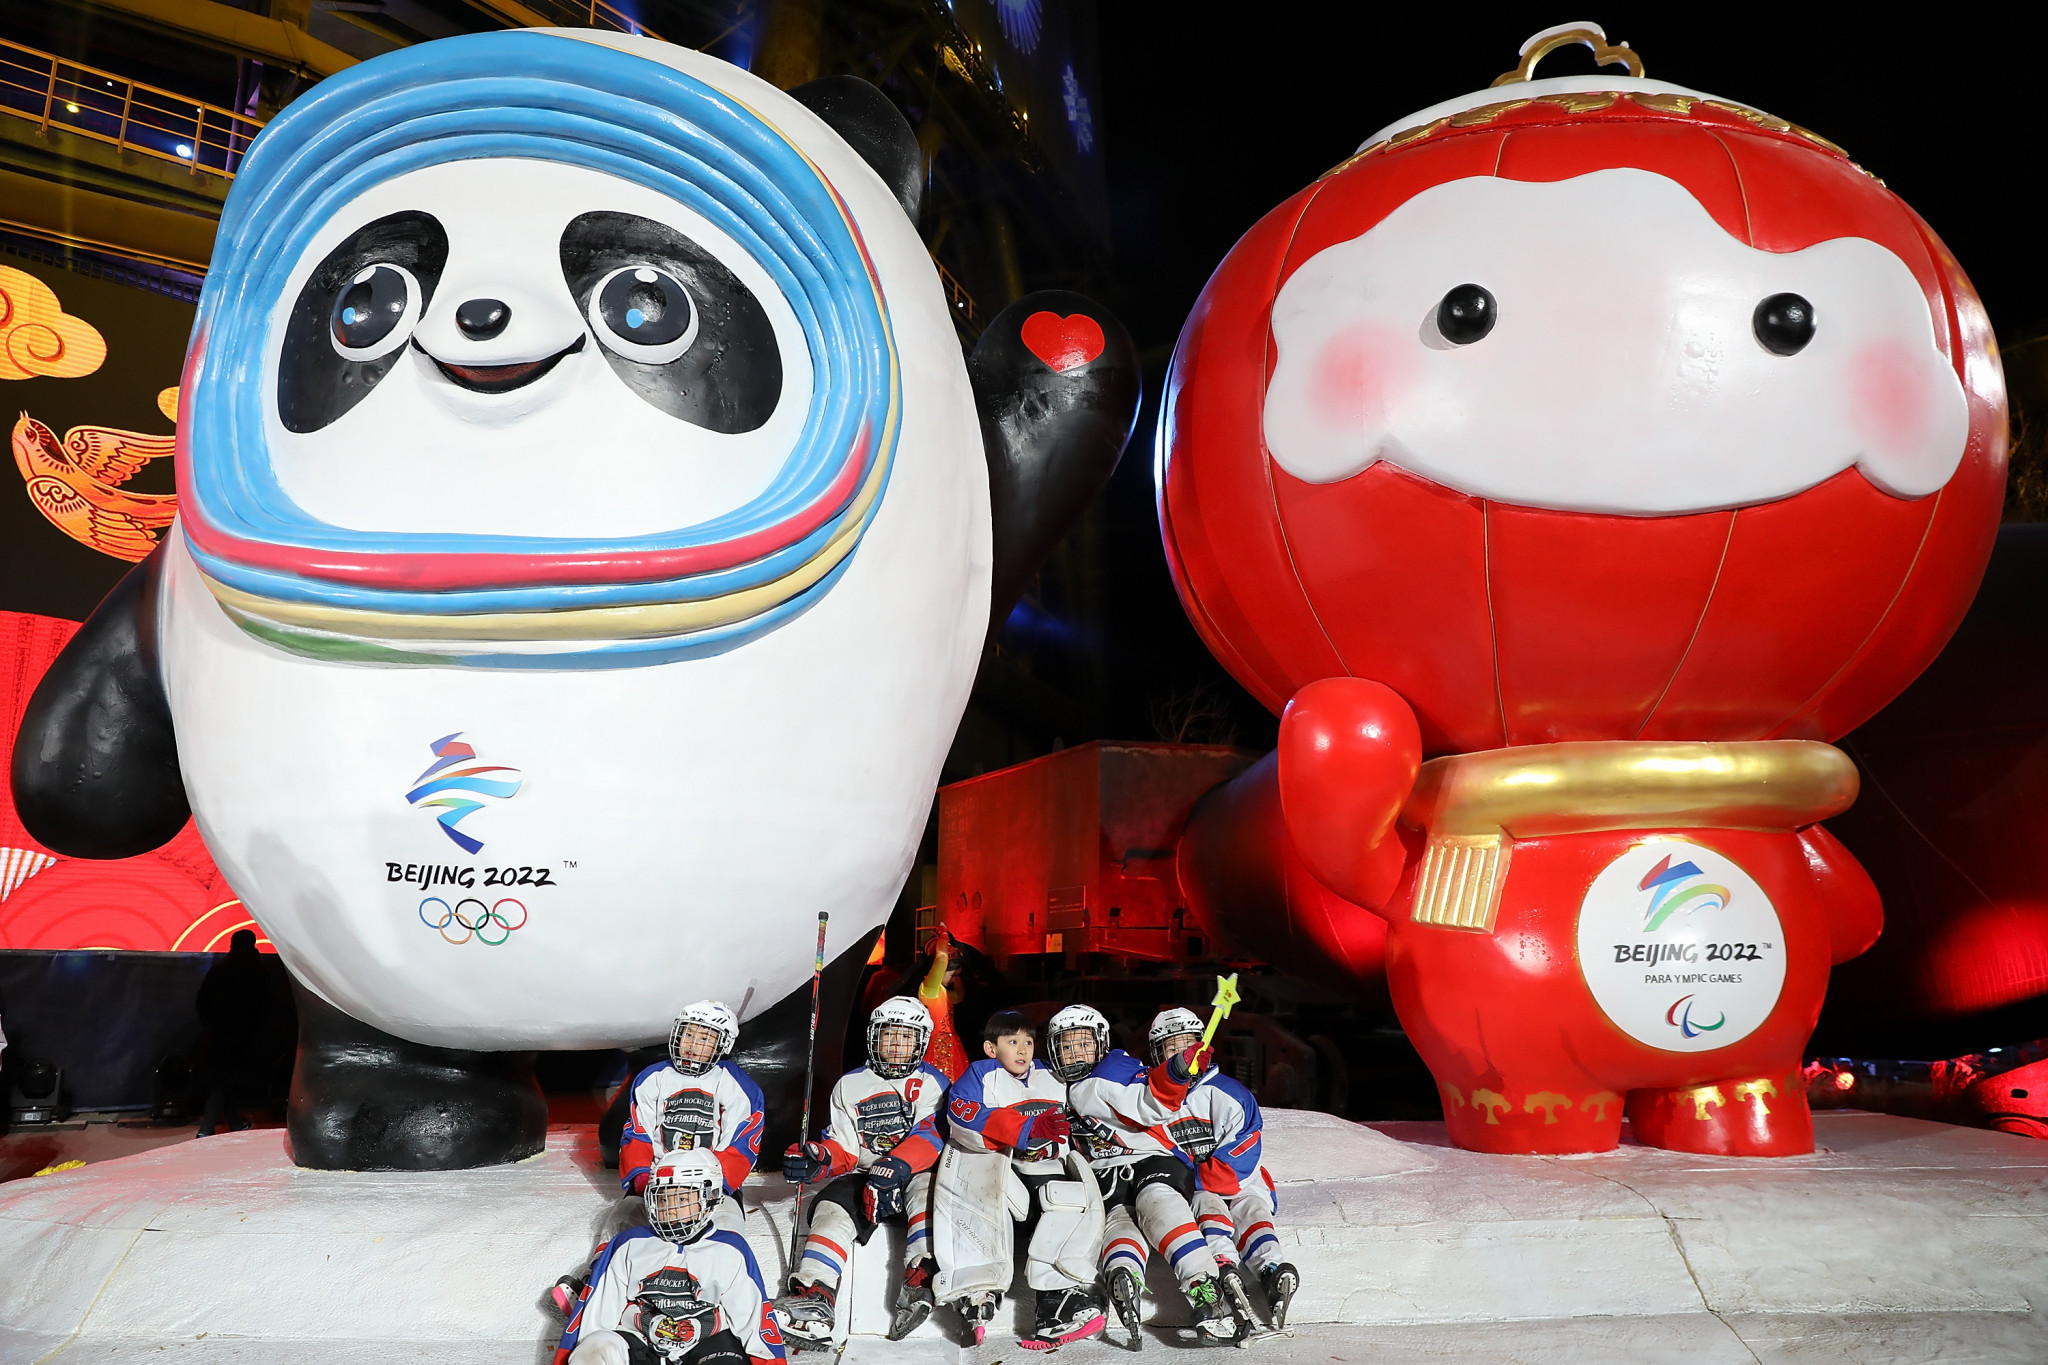 American Senators urge IOC to relocate 2022 Winter Olympic Games due to human rights issues in China